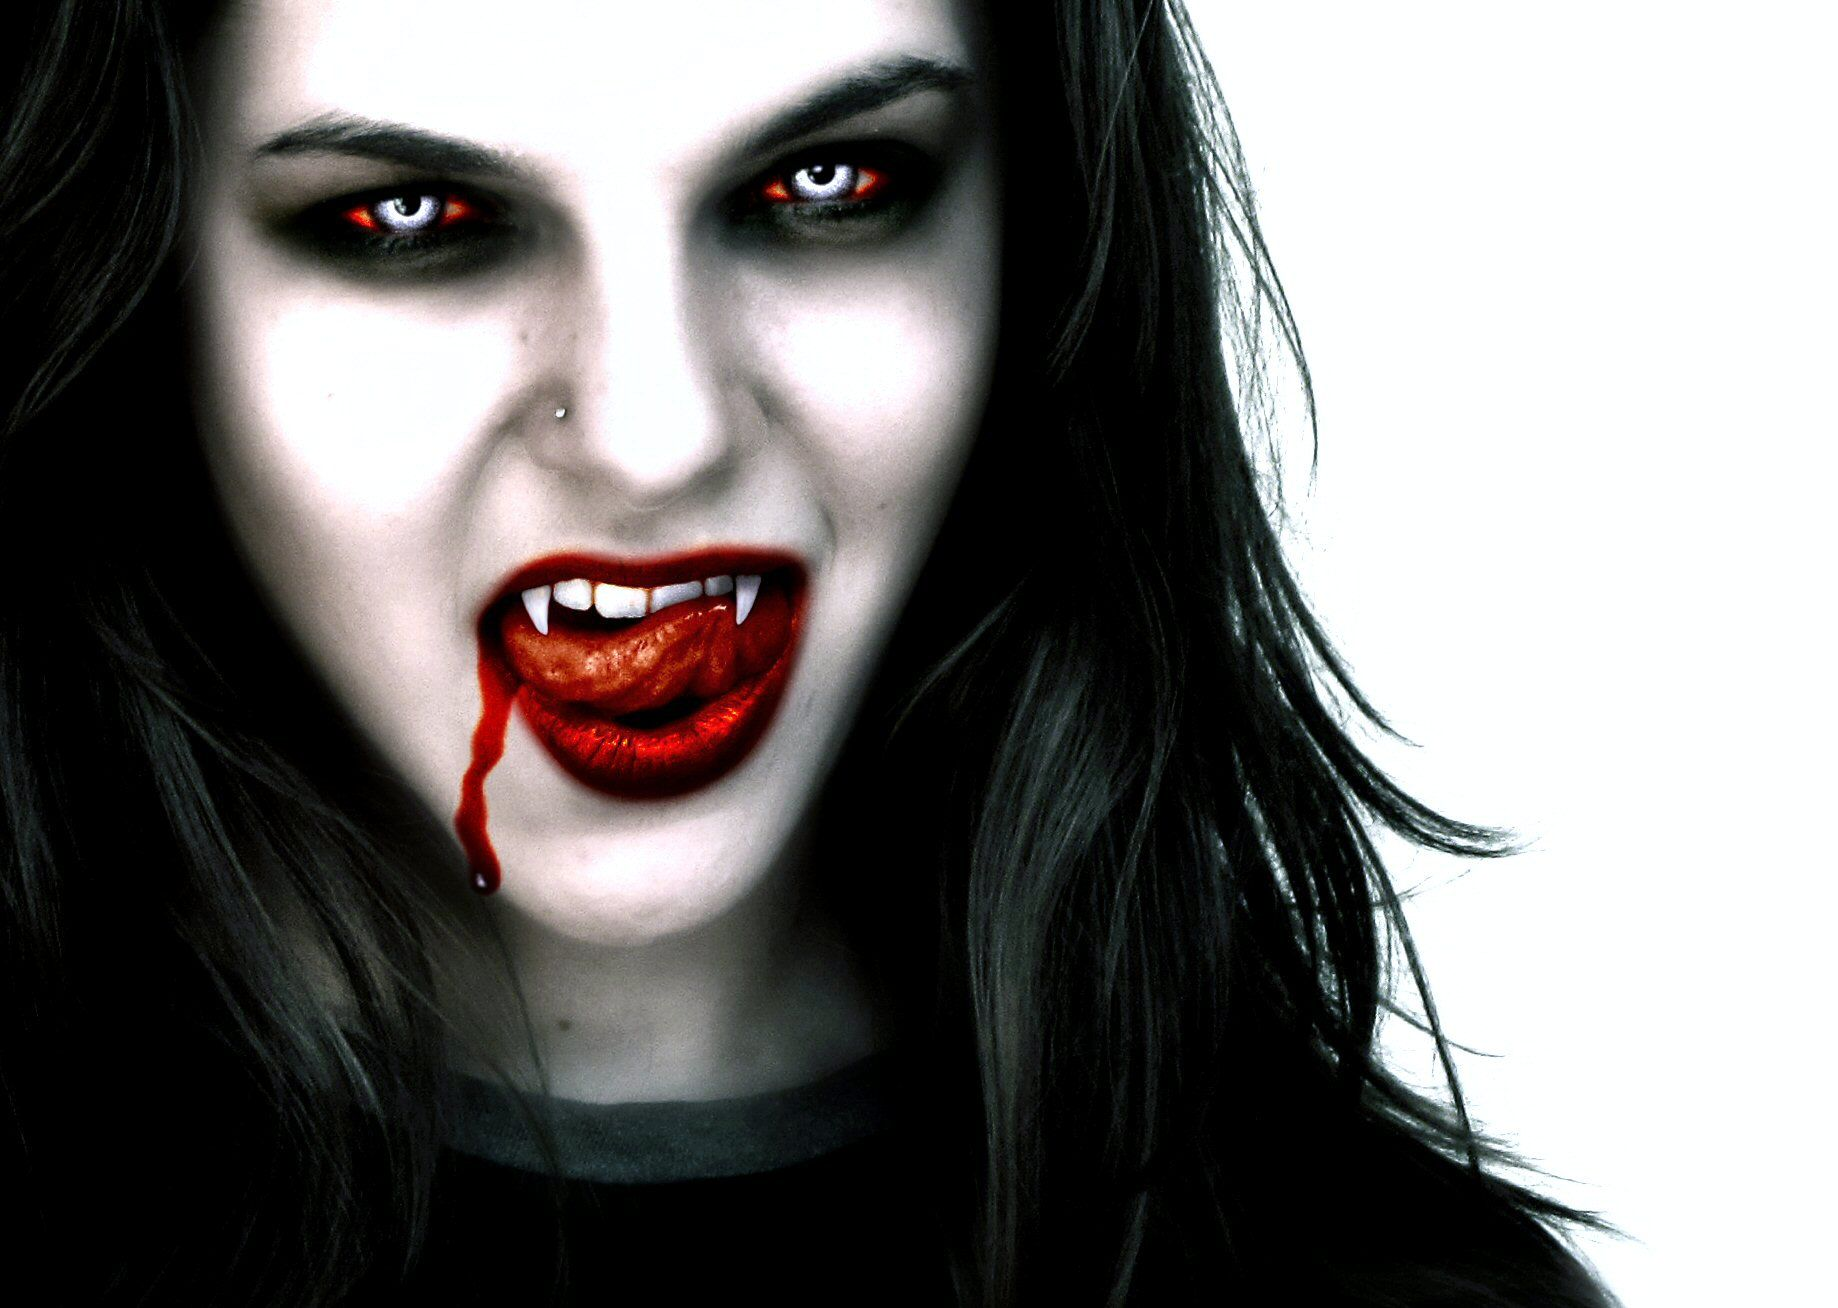 161 Vampire Hd Wallpapers Backgrounds Wallpaper Abyss Page 2 Vampire Art Vampire Girls Vampire Images